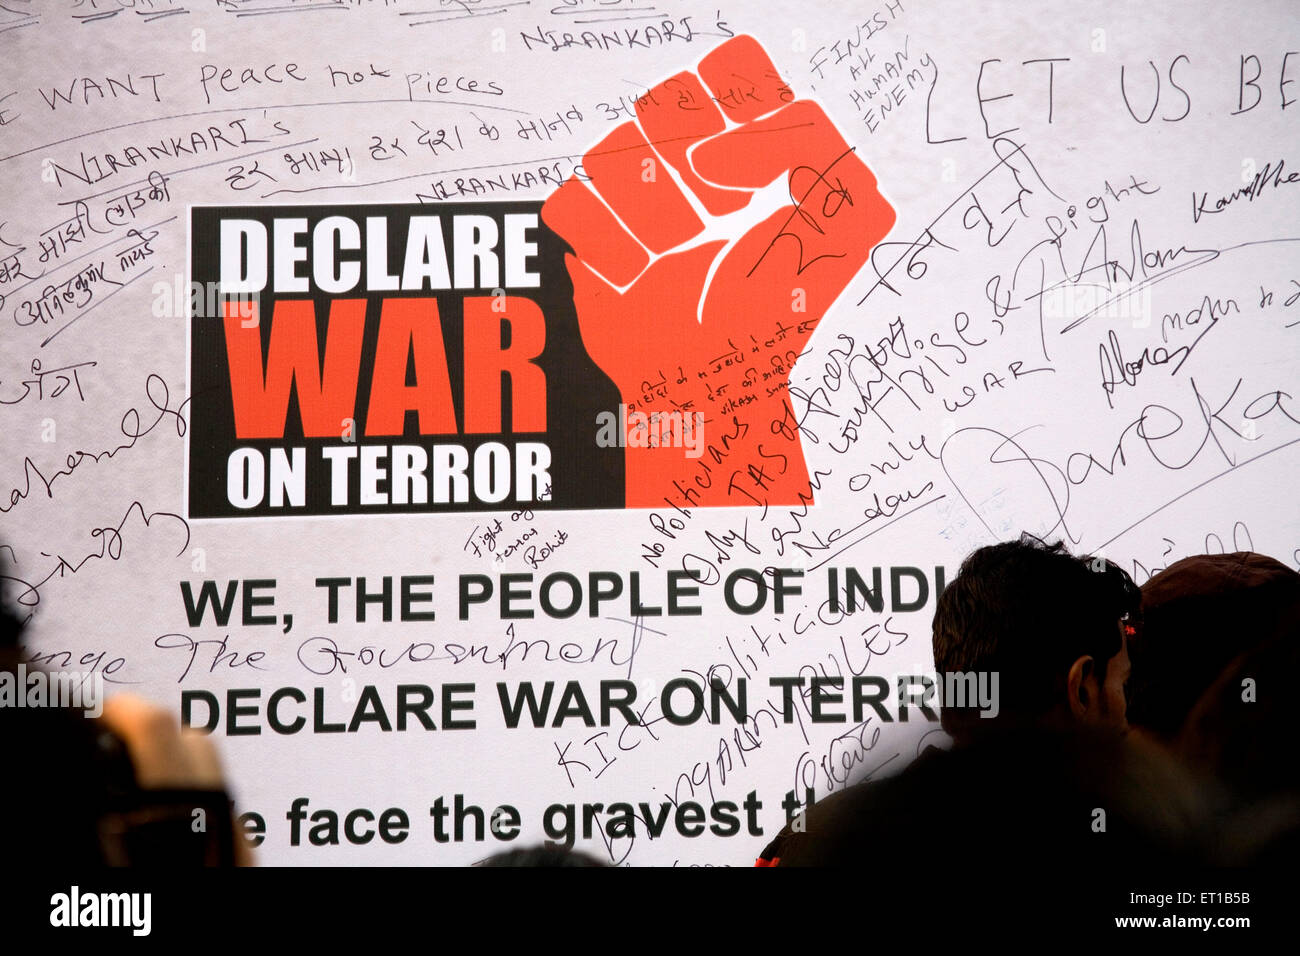 Declare War Terror written white Graffiti wall ; 3rd December ; people protesting terror attacks 26th November 2008 - Stock Image